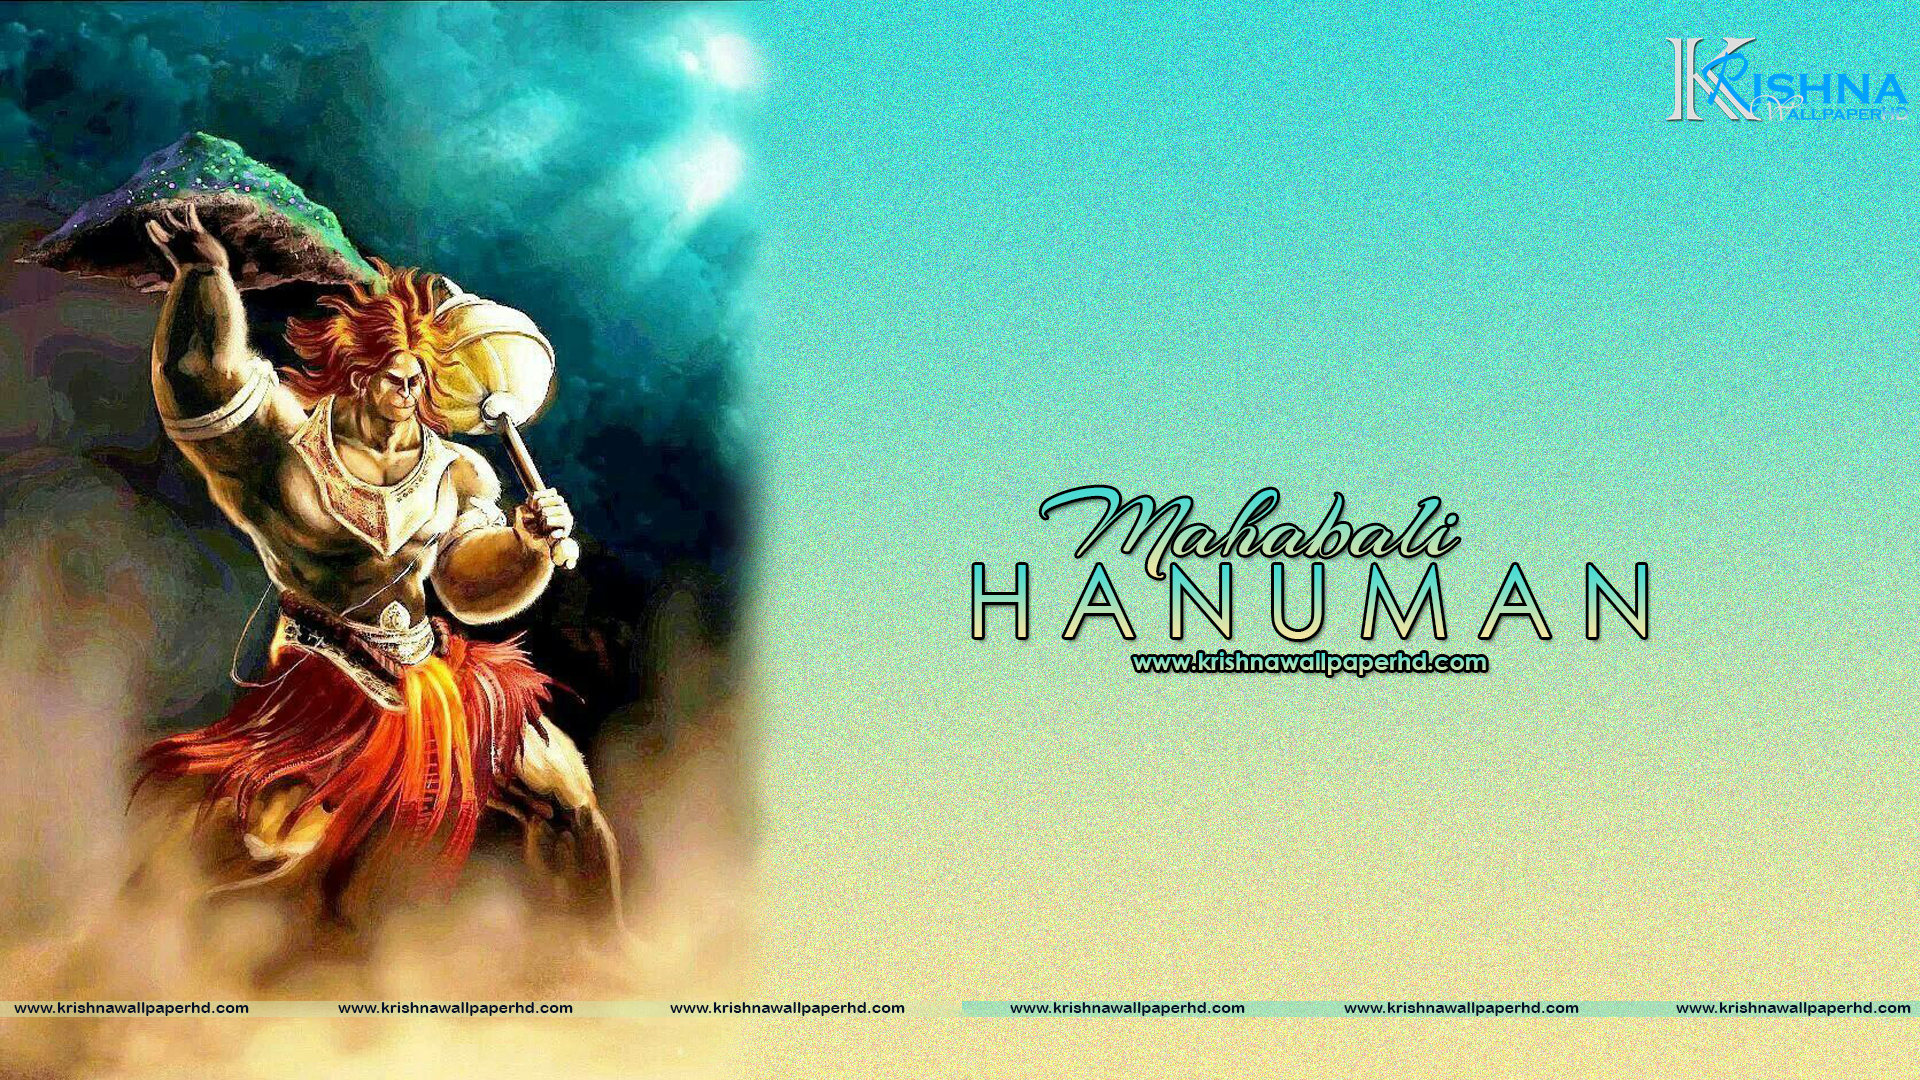 Full HD Size Wallpaper of Mahabali Hanuman Free Download